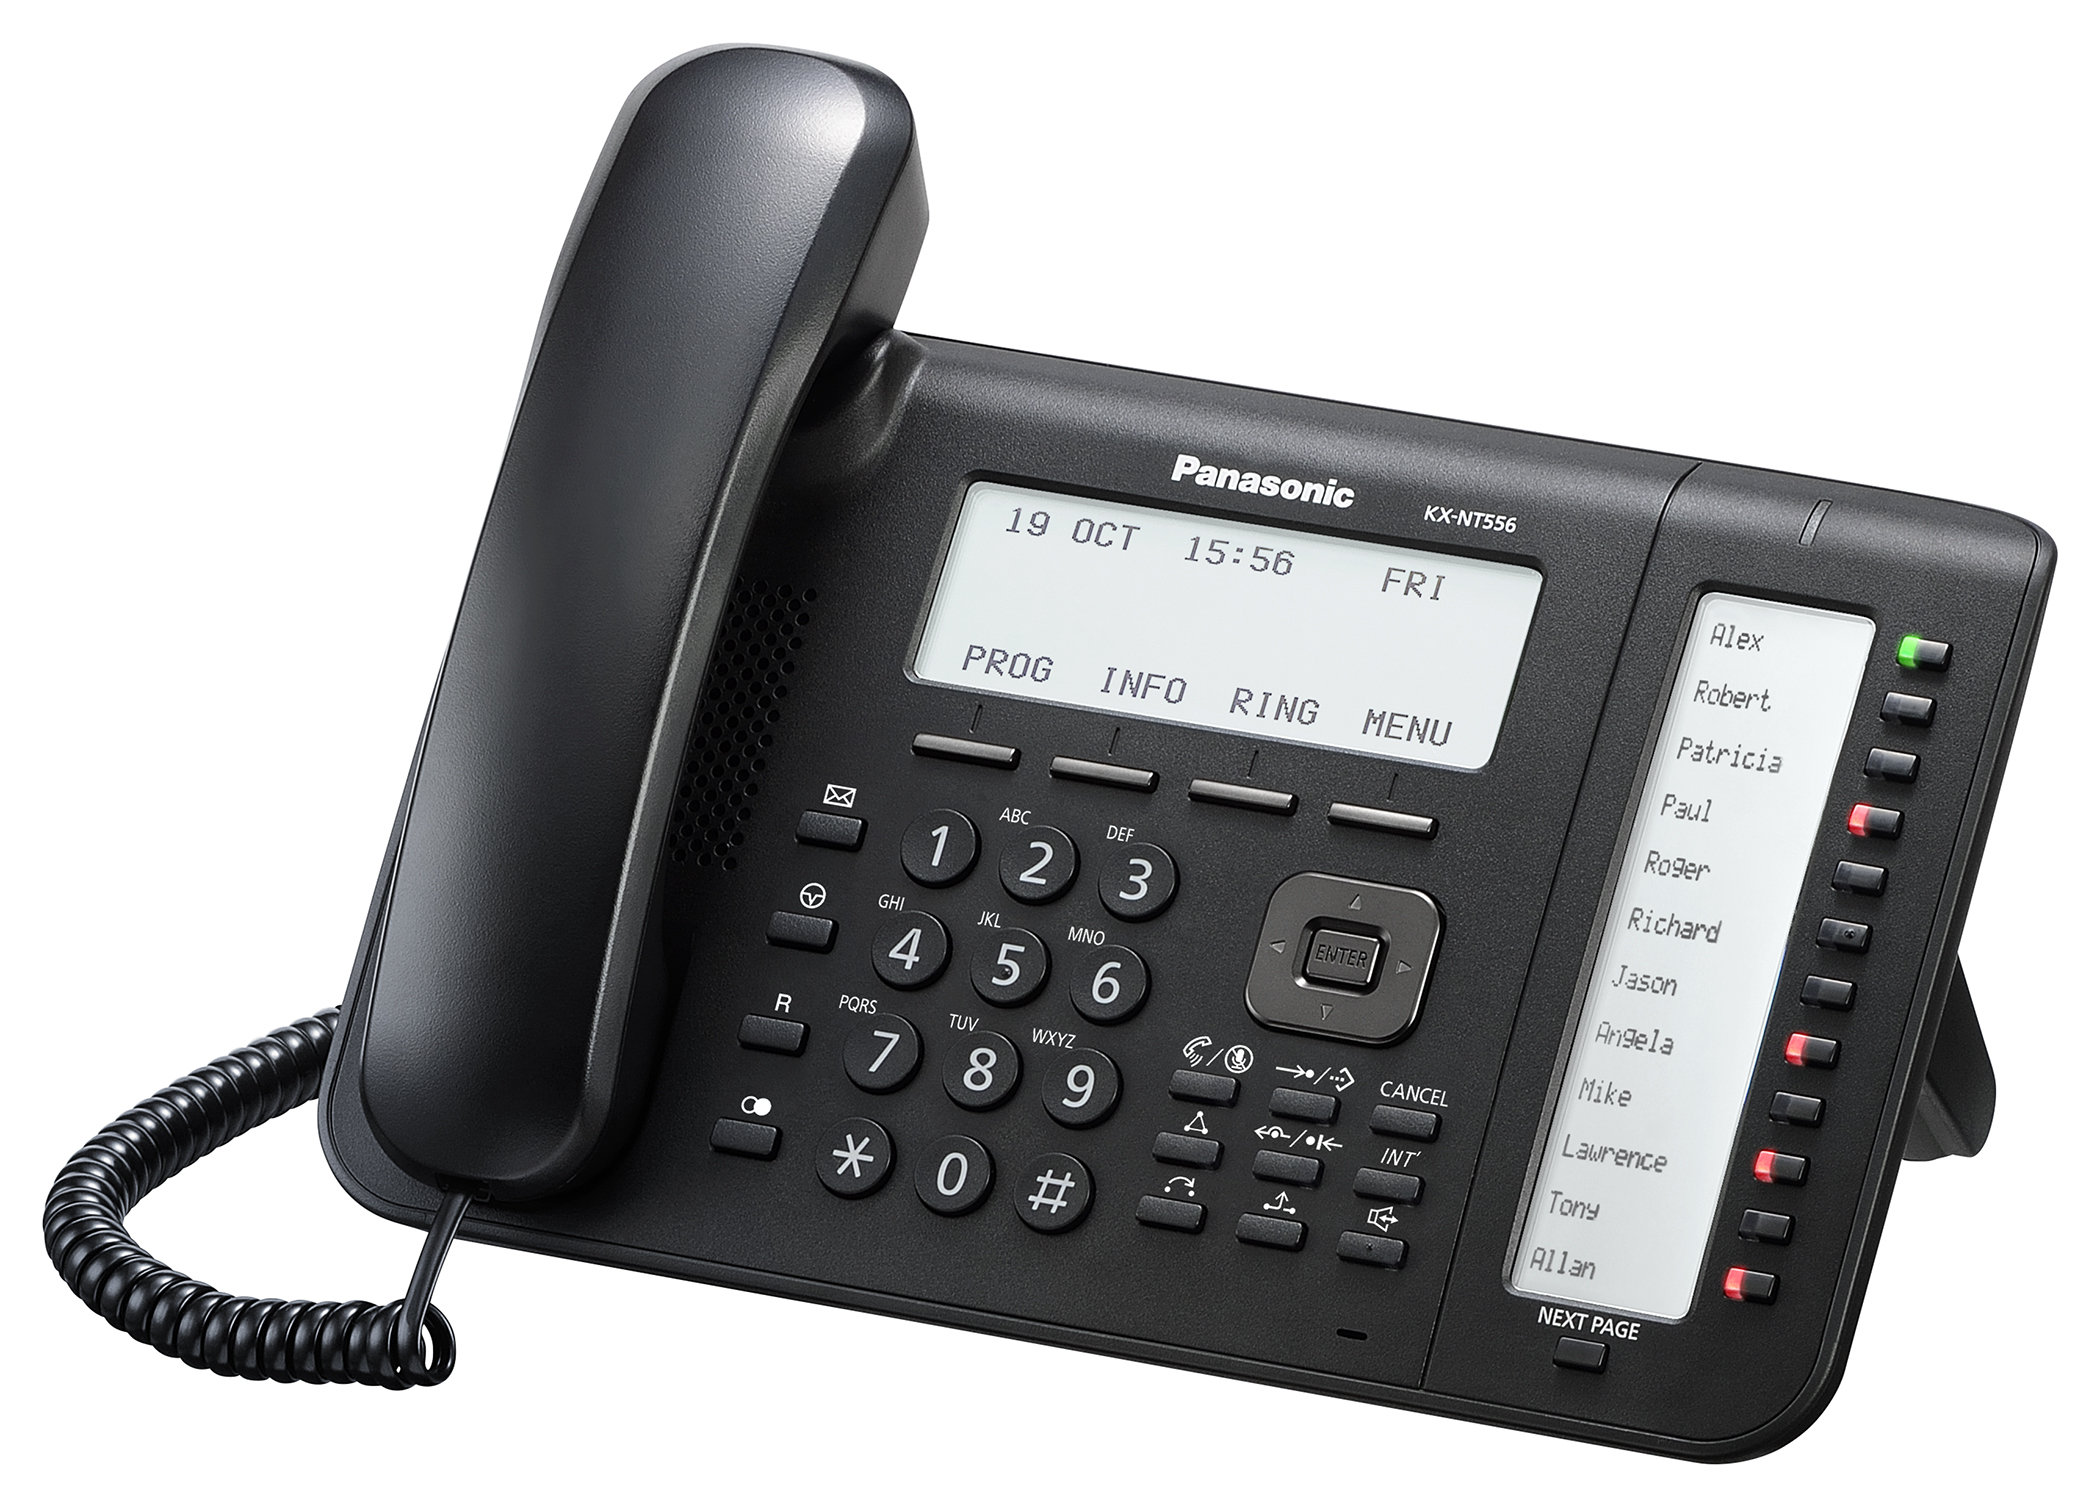 panasonic phone label template - voip phone systems provided by infotel of richmond va